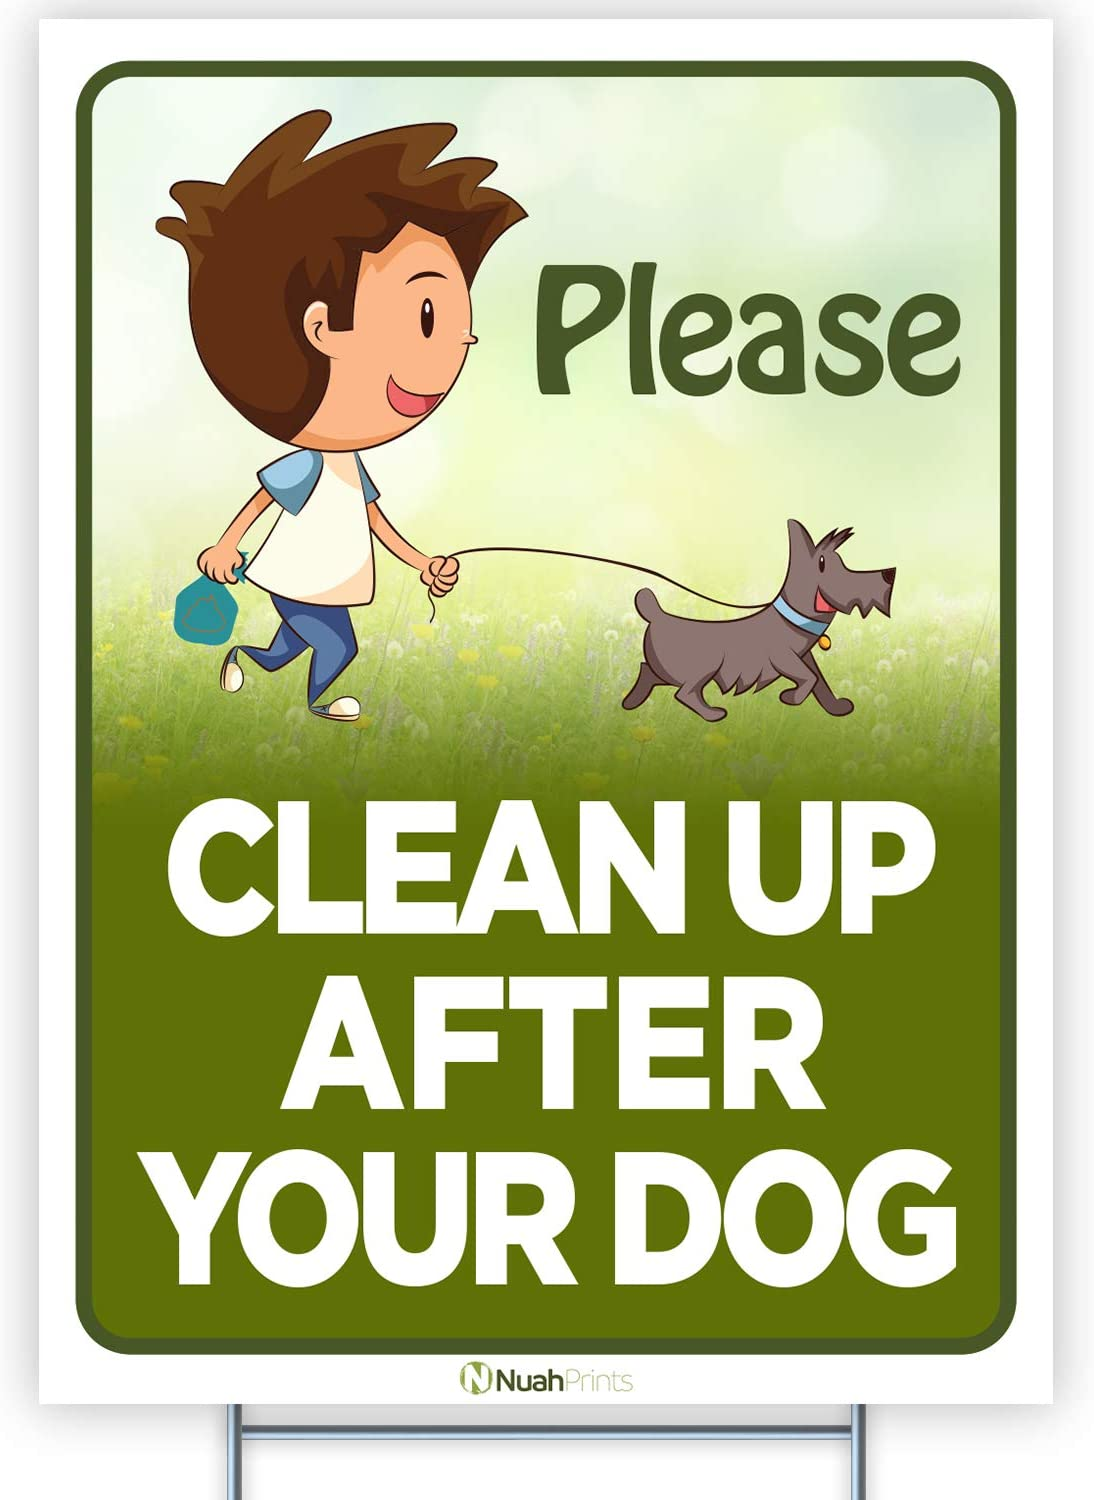 Nuah Prints Please Clean Up After Your Dog Sign (9 x 12 Inches) | Colorful, Doubled-Sided Pick Up After Your Dog Sign | Unique Illustration Lawn Garden Signs for Your Home | Printed in The USA (1)